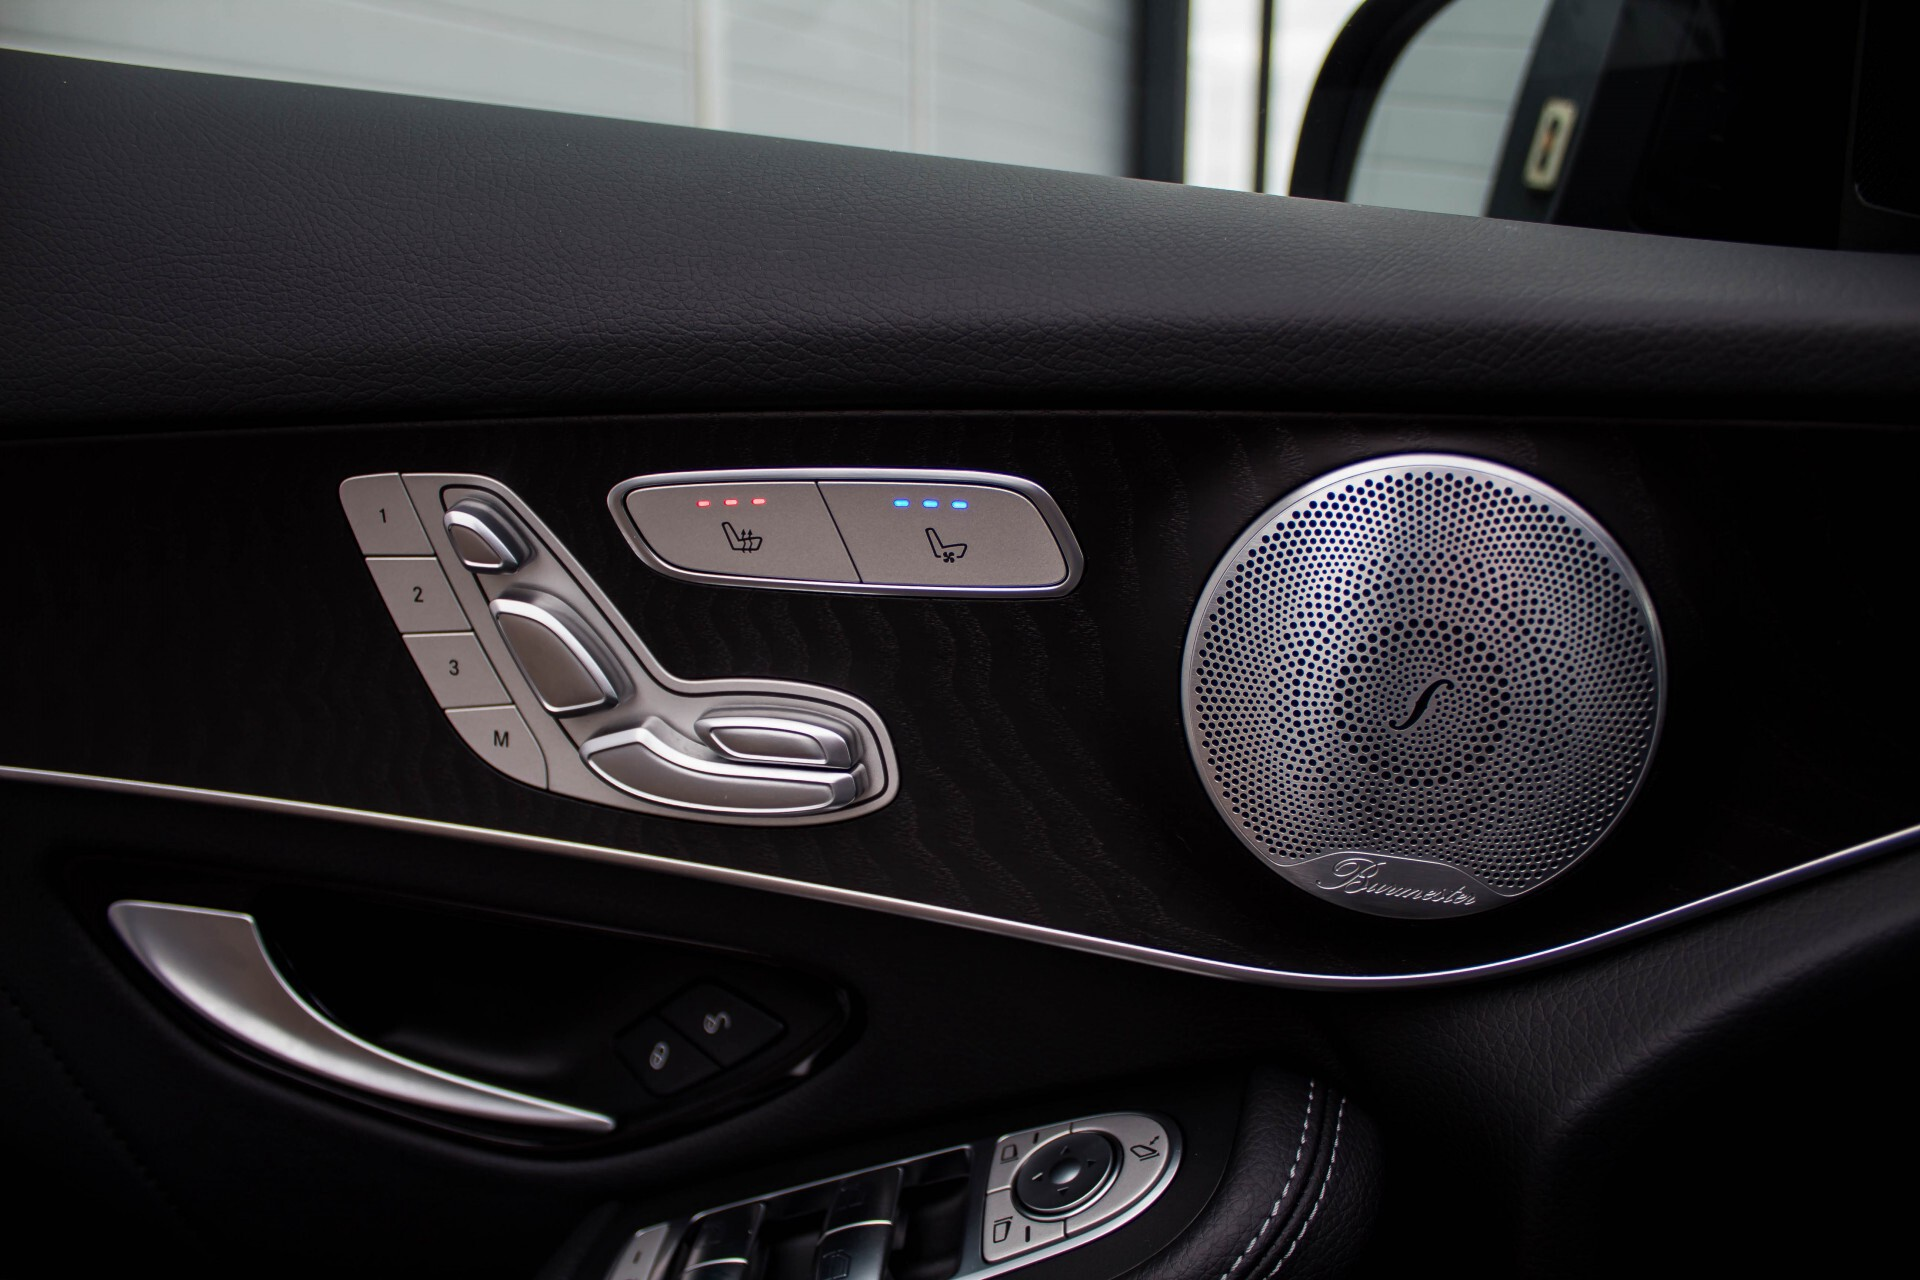 Mercedes-Benz GLC-Klasse 300 4-M AMG Panorama Distronic/Keyless/Burmester/Memory/Night Aut9 Foto 26